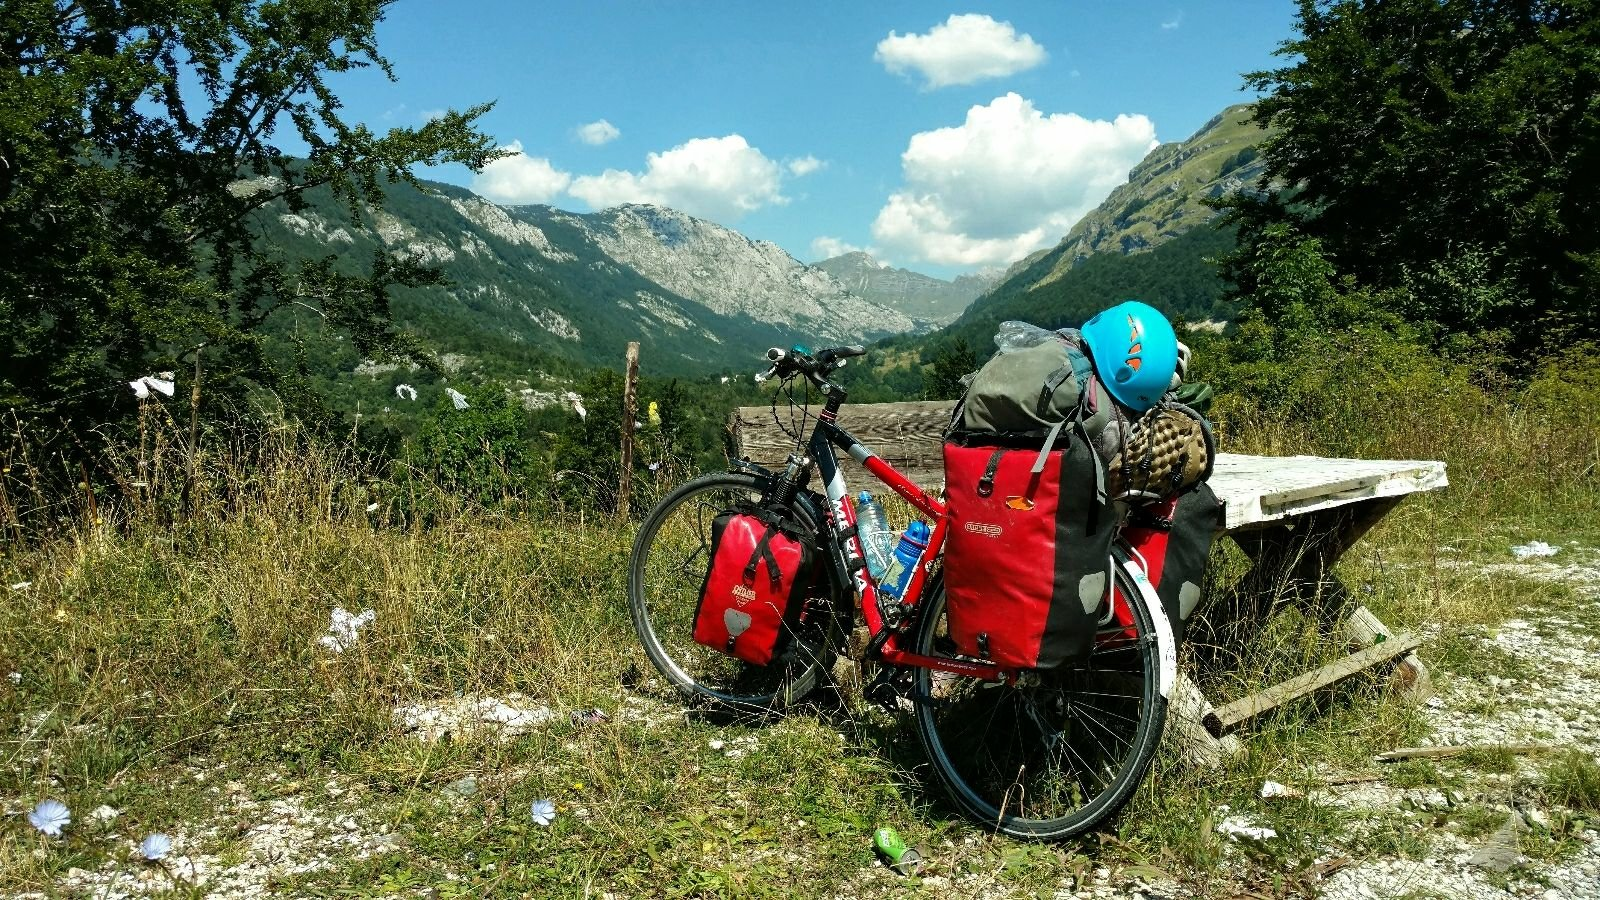 BLOG | Biking from Skopje to Mostar via Durmitor National Park